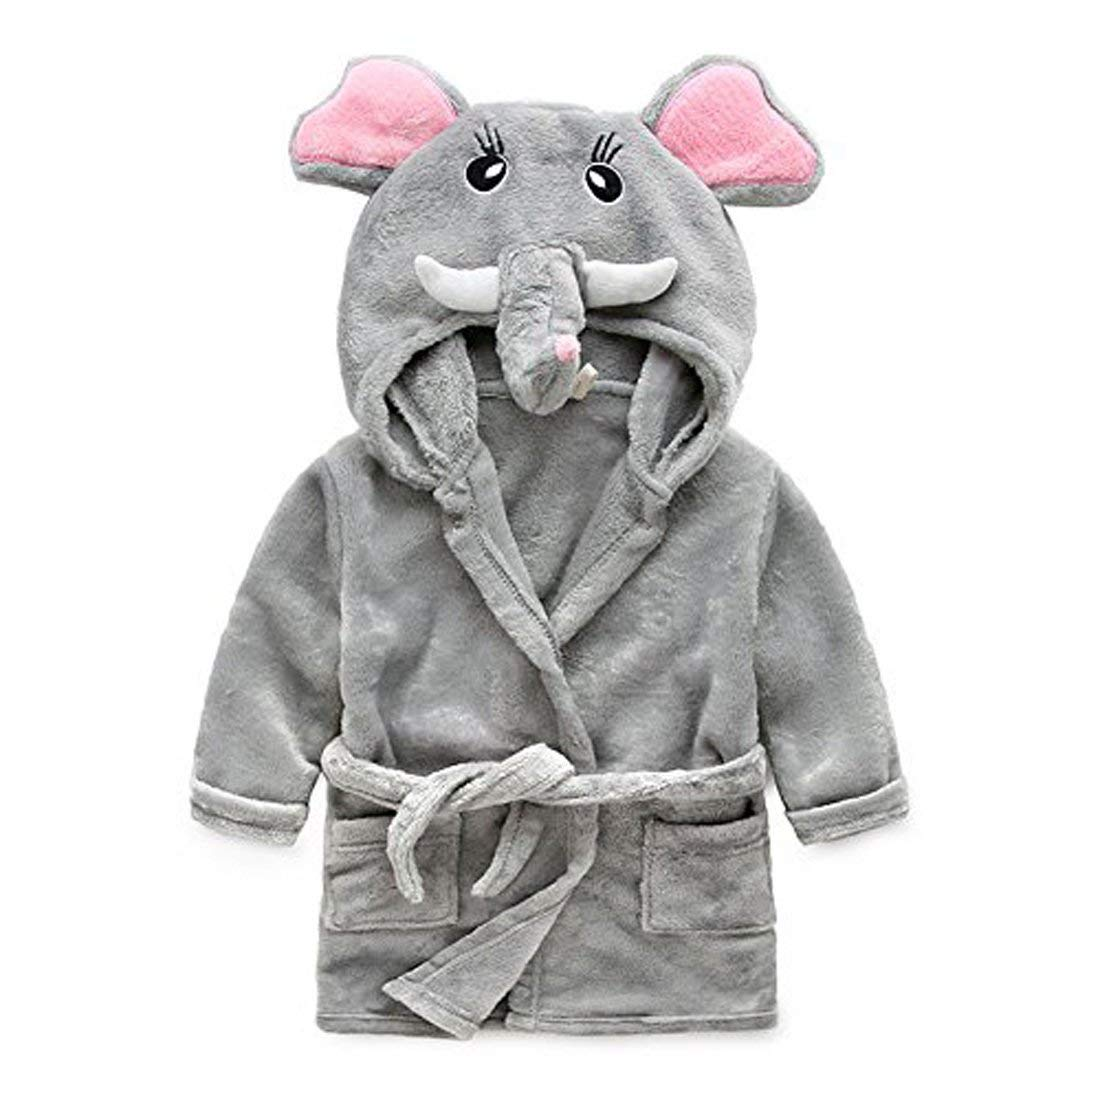 Toddler//Kids Hooded Plush Robe Animal Fleece Bathrobe Children Pajamas